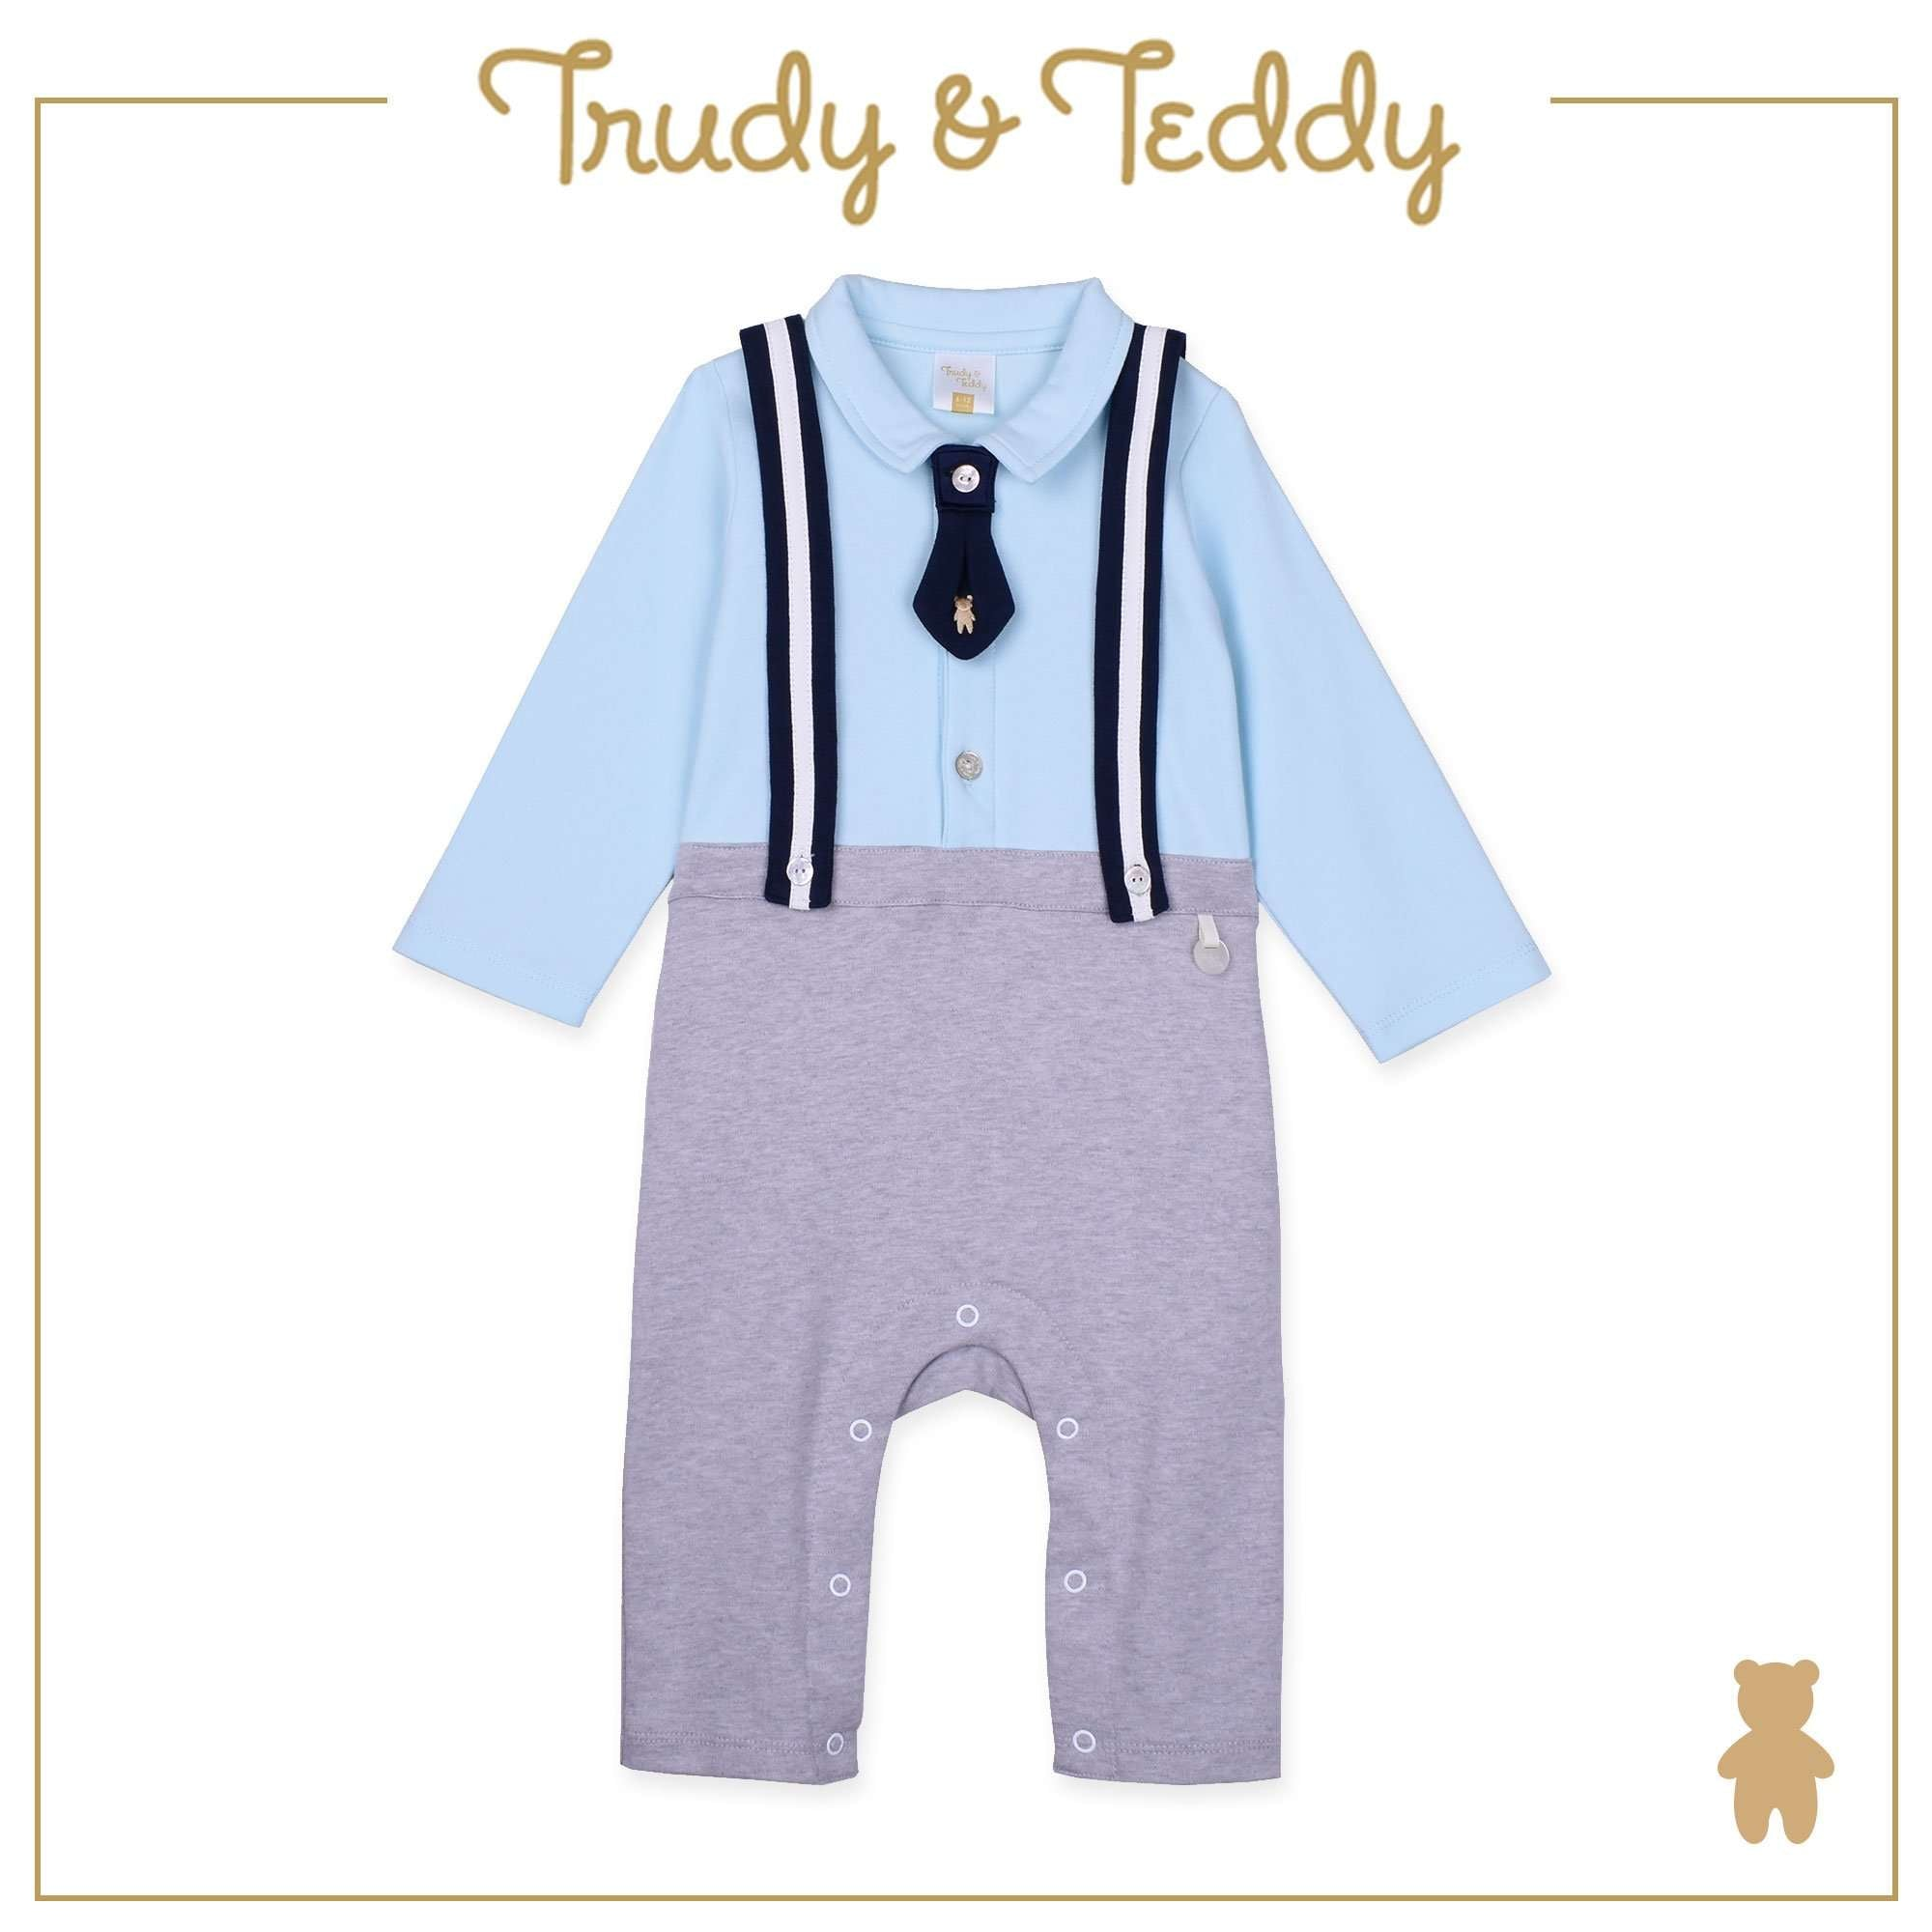 Trudy & Teddy Baby Boy Knit Long Sleeve Long Romper - Light Blue T921002-3621-L1 : Buy Trudy & Teddy online at CMG.MY